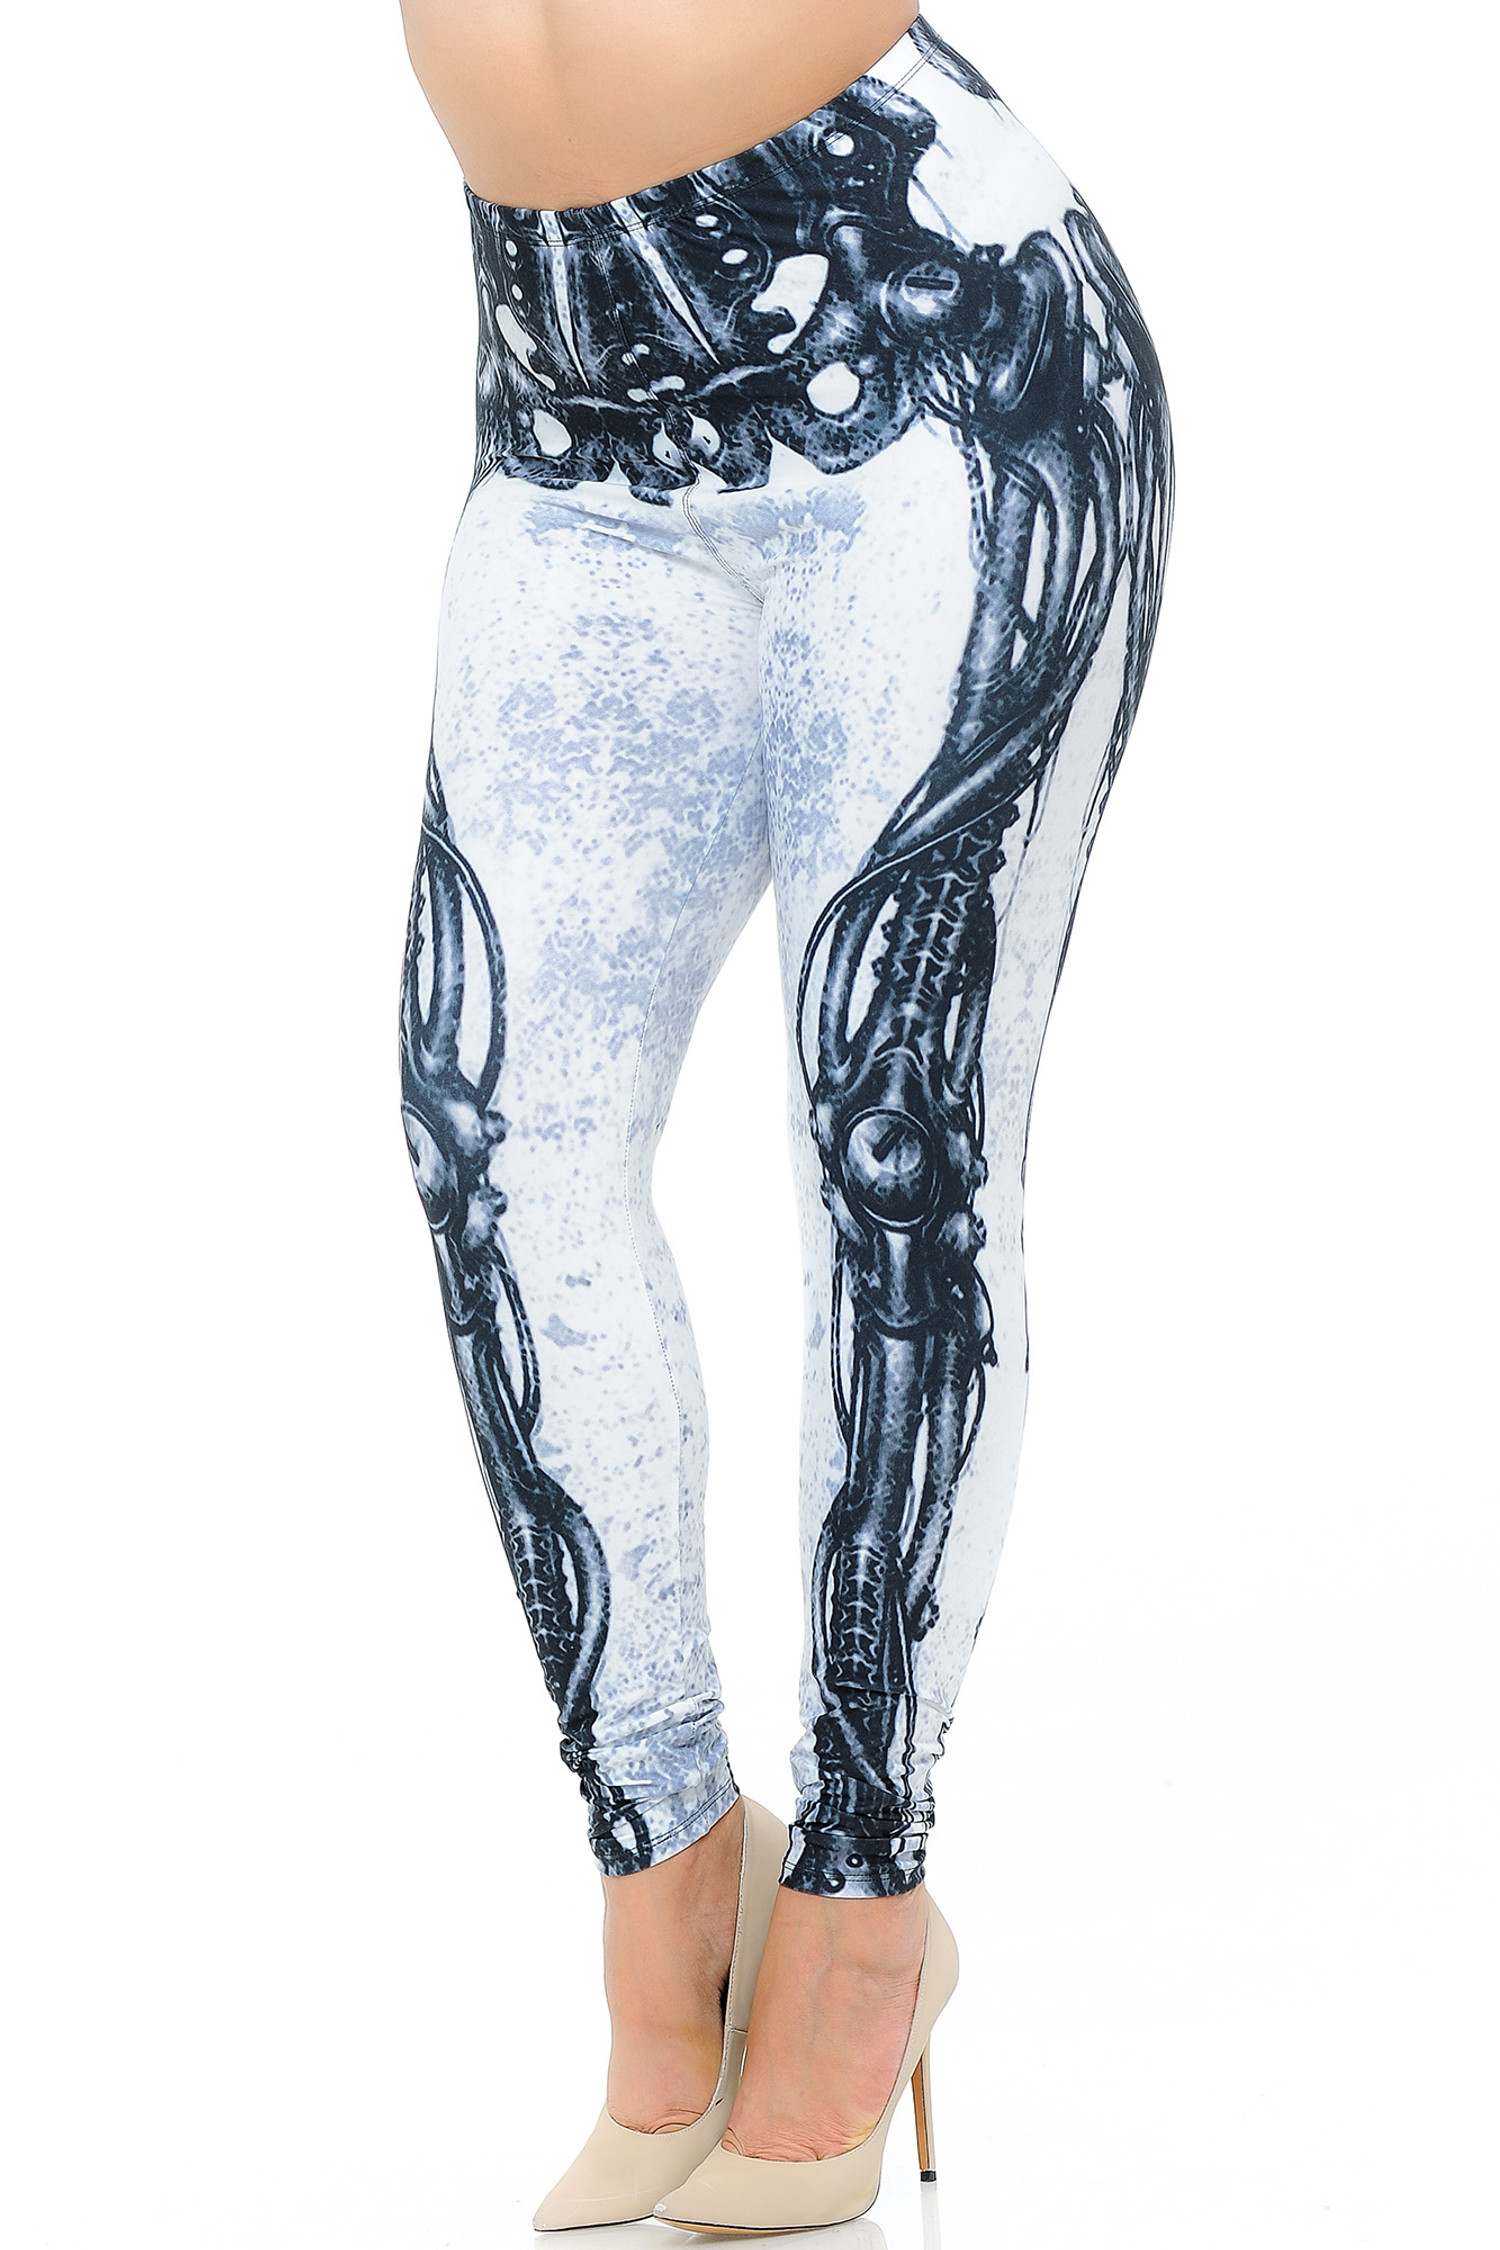 Creamy Soft White Bio Mechanical Skeleton Plus Size Leggings (Steam Punk) - USA Fashion™